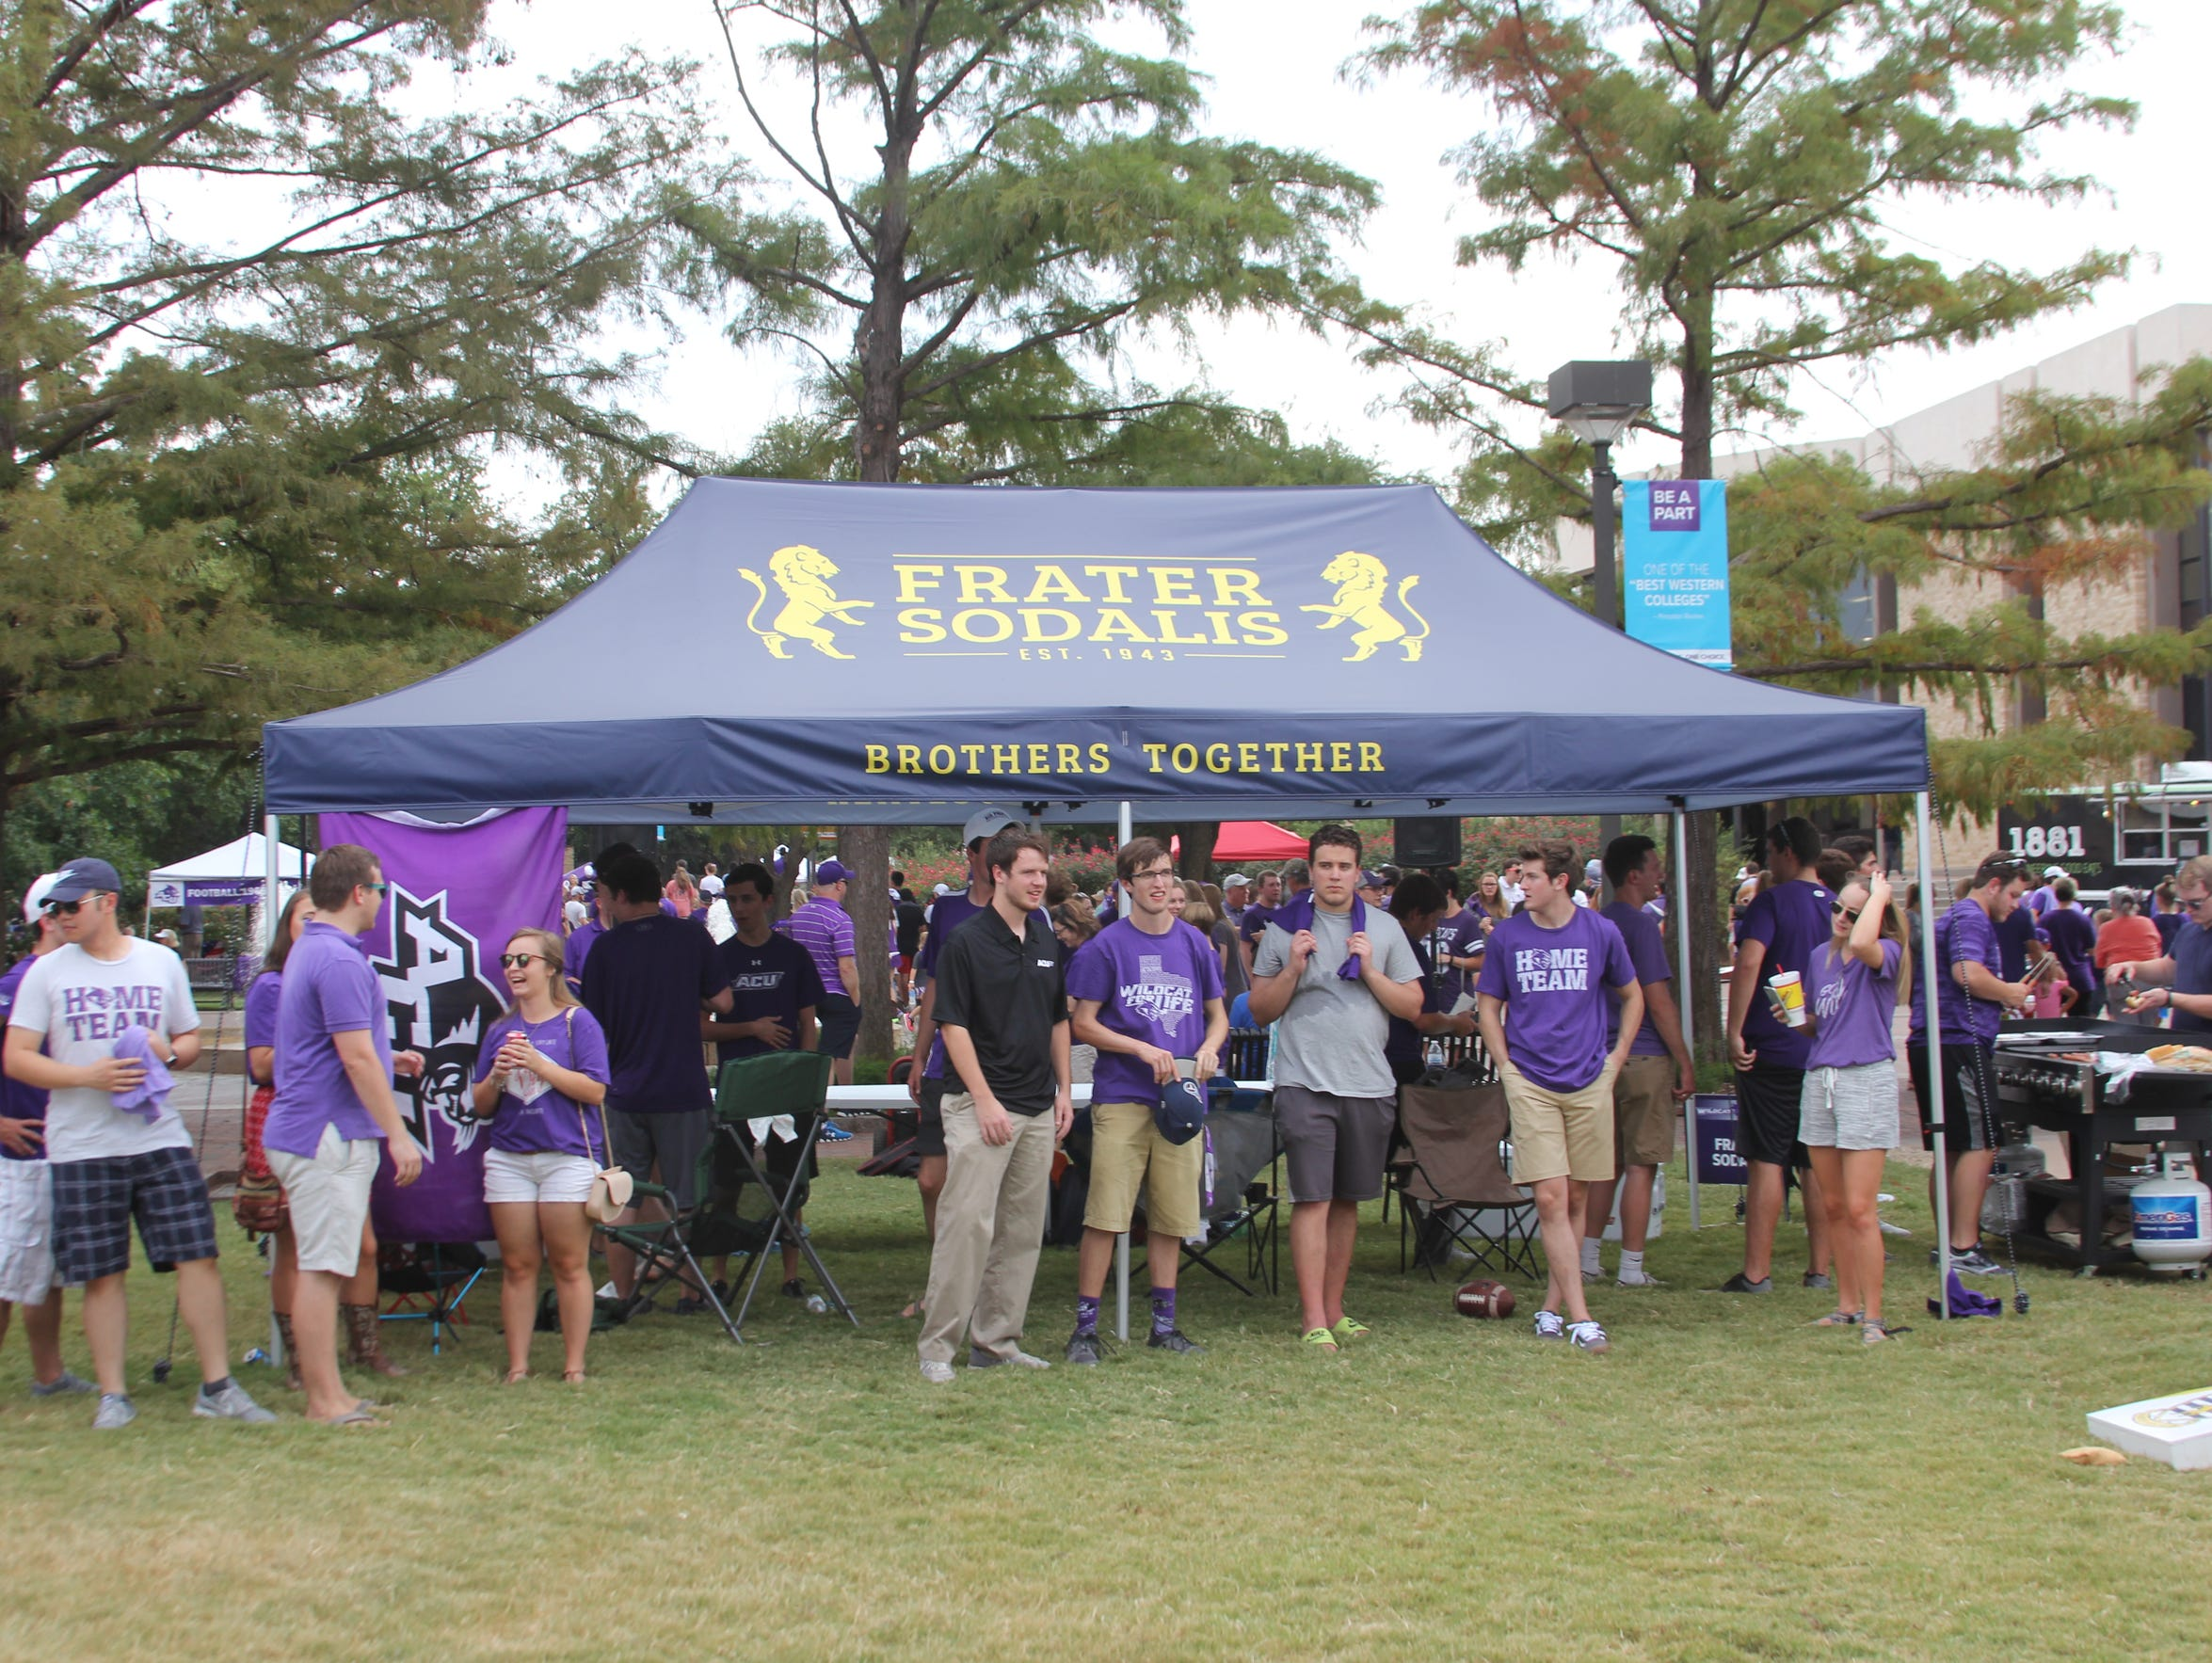 A new Frater Sodalis tent for tailgating. Alumni provided